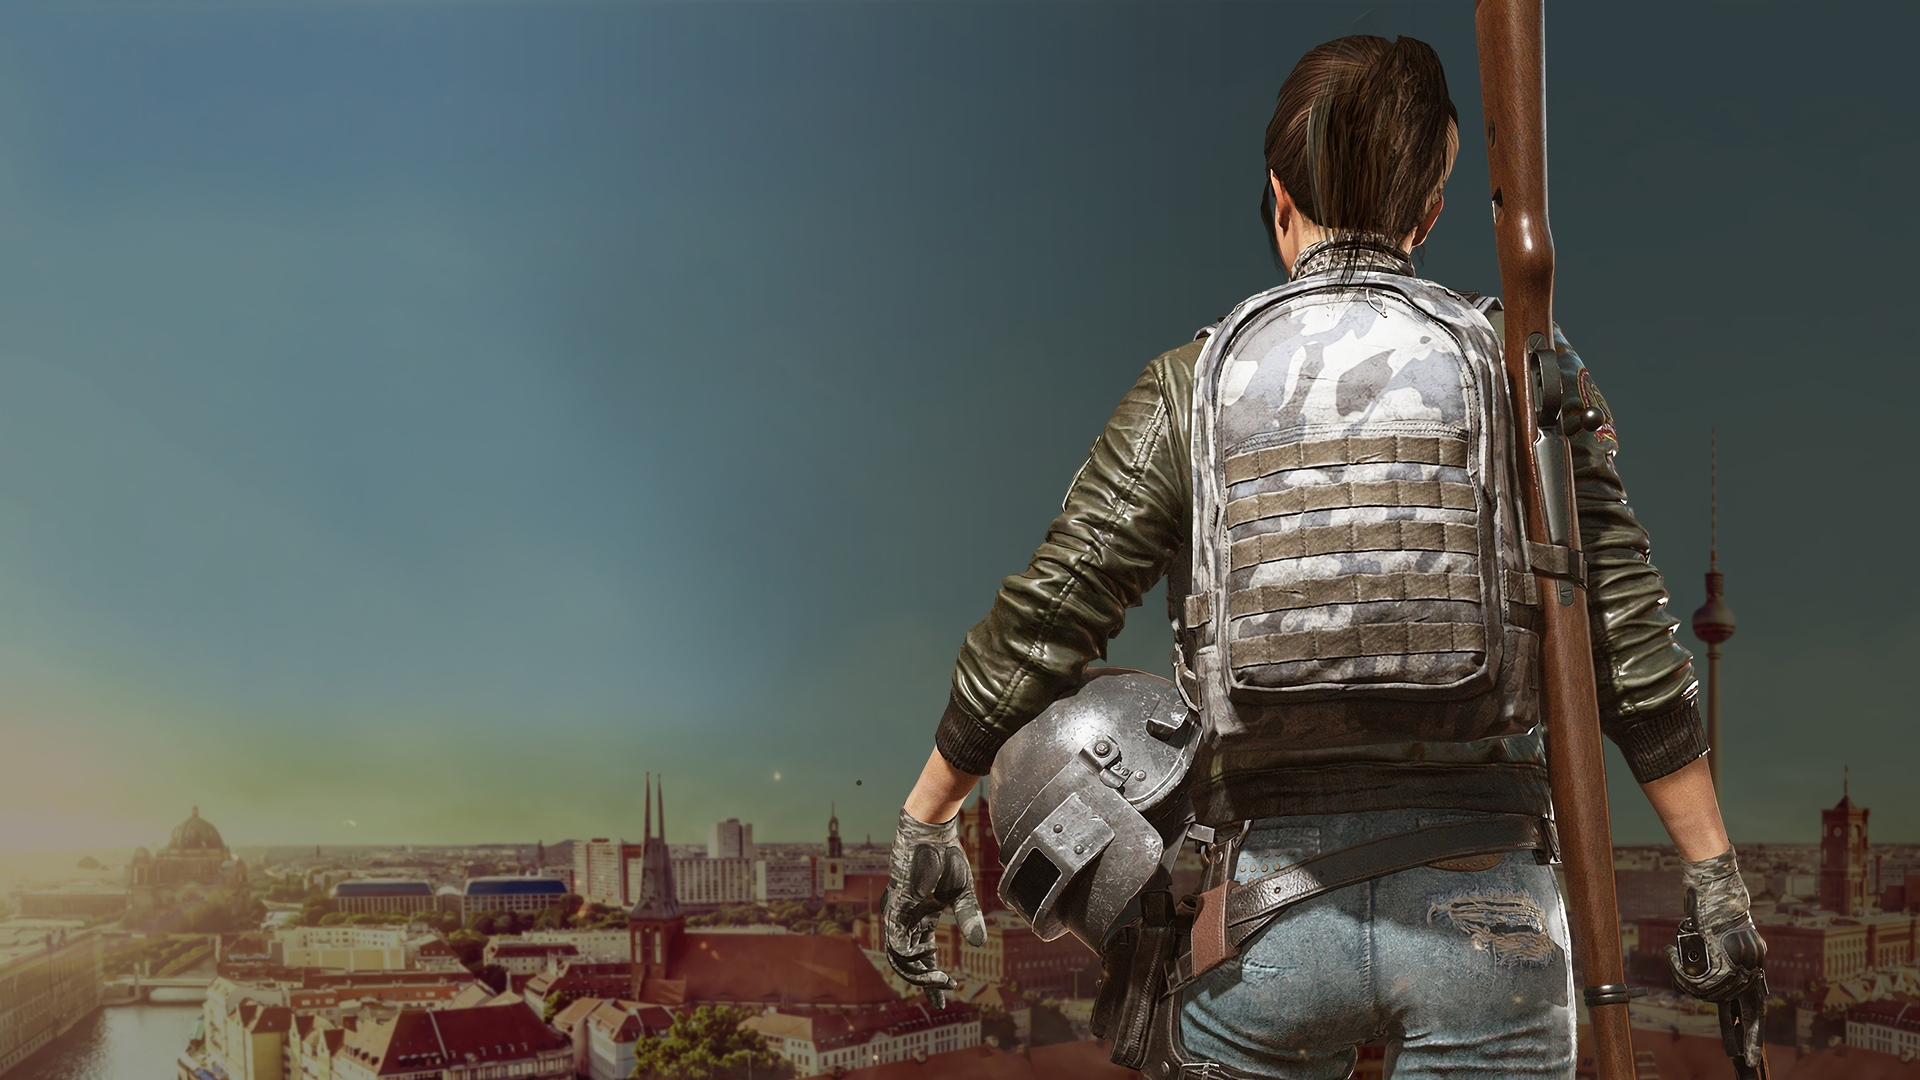 Pubg Wallpaper 1920x1080: 1920x1080 Game Girl Pubg 4k Laptop Full HD 1080P HD 4k